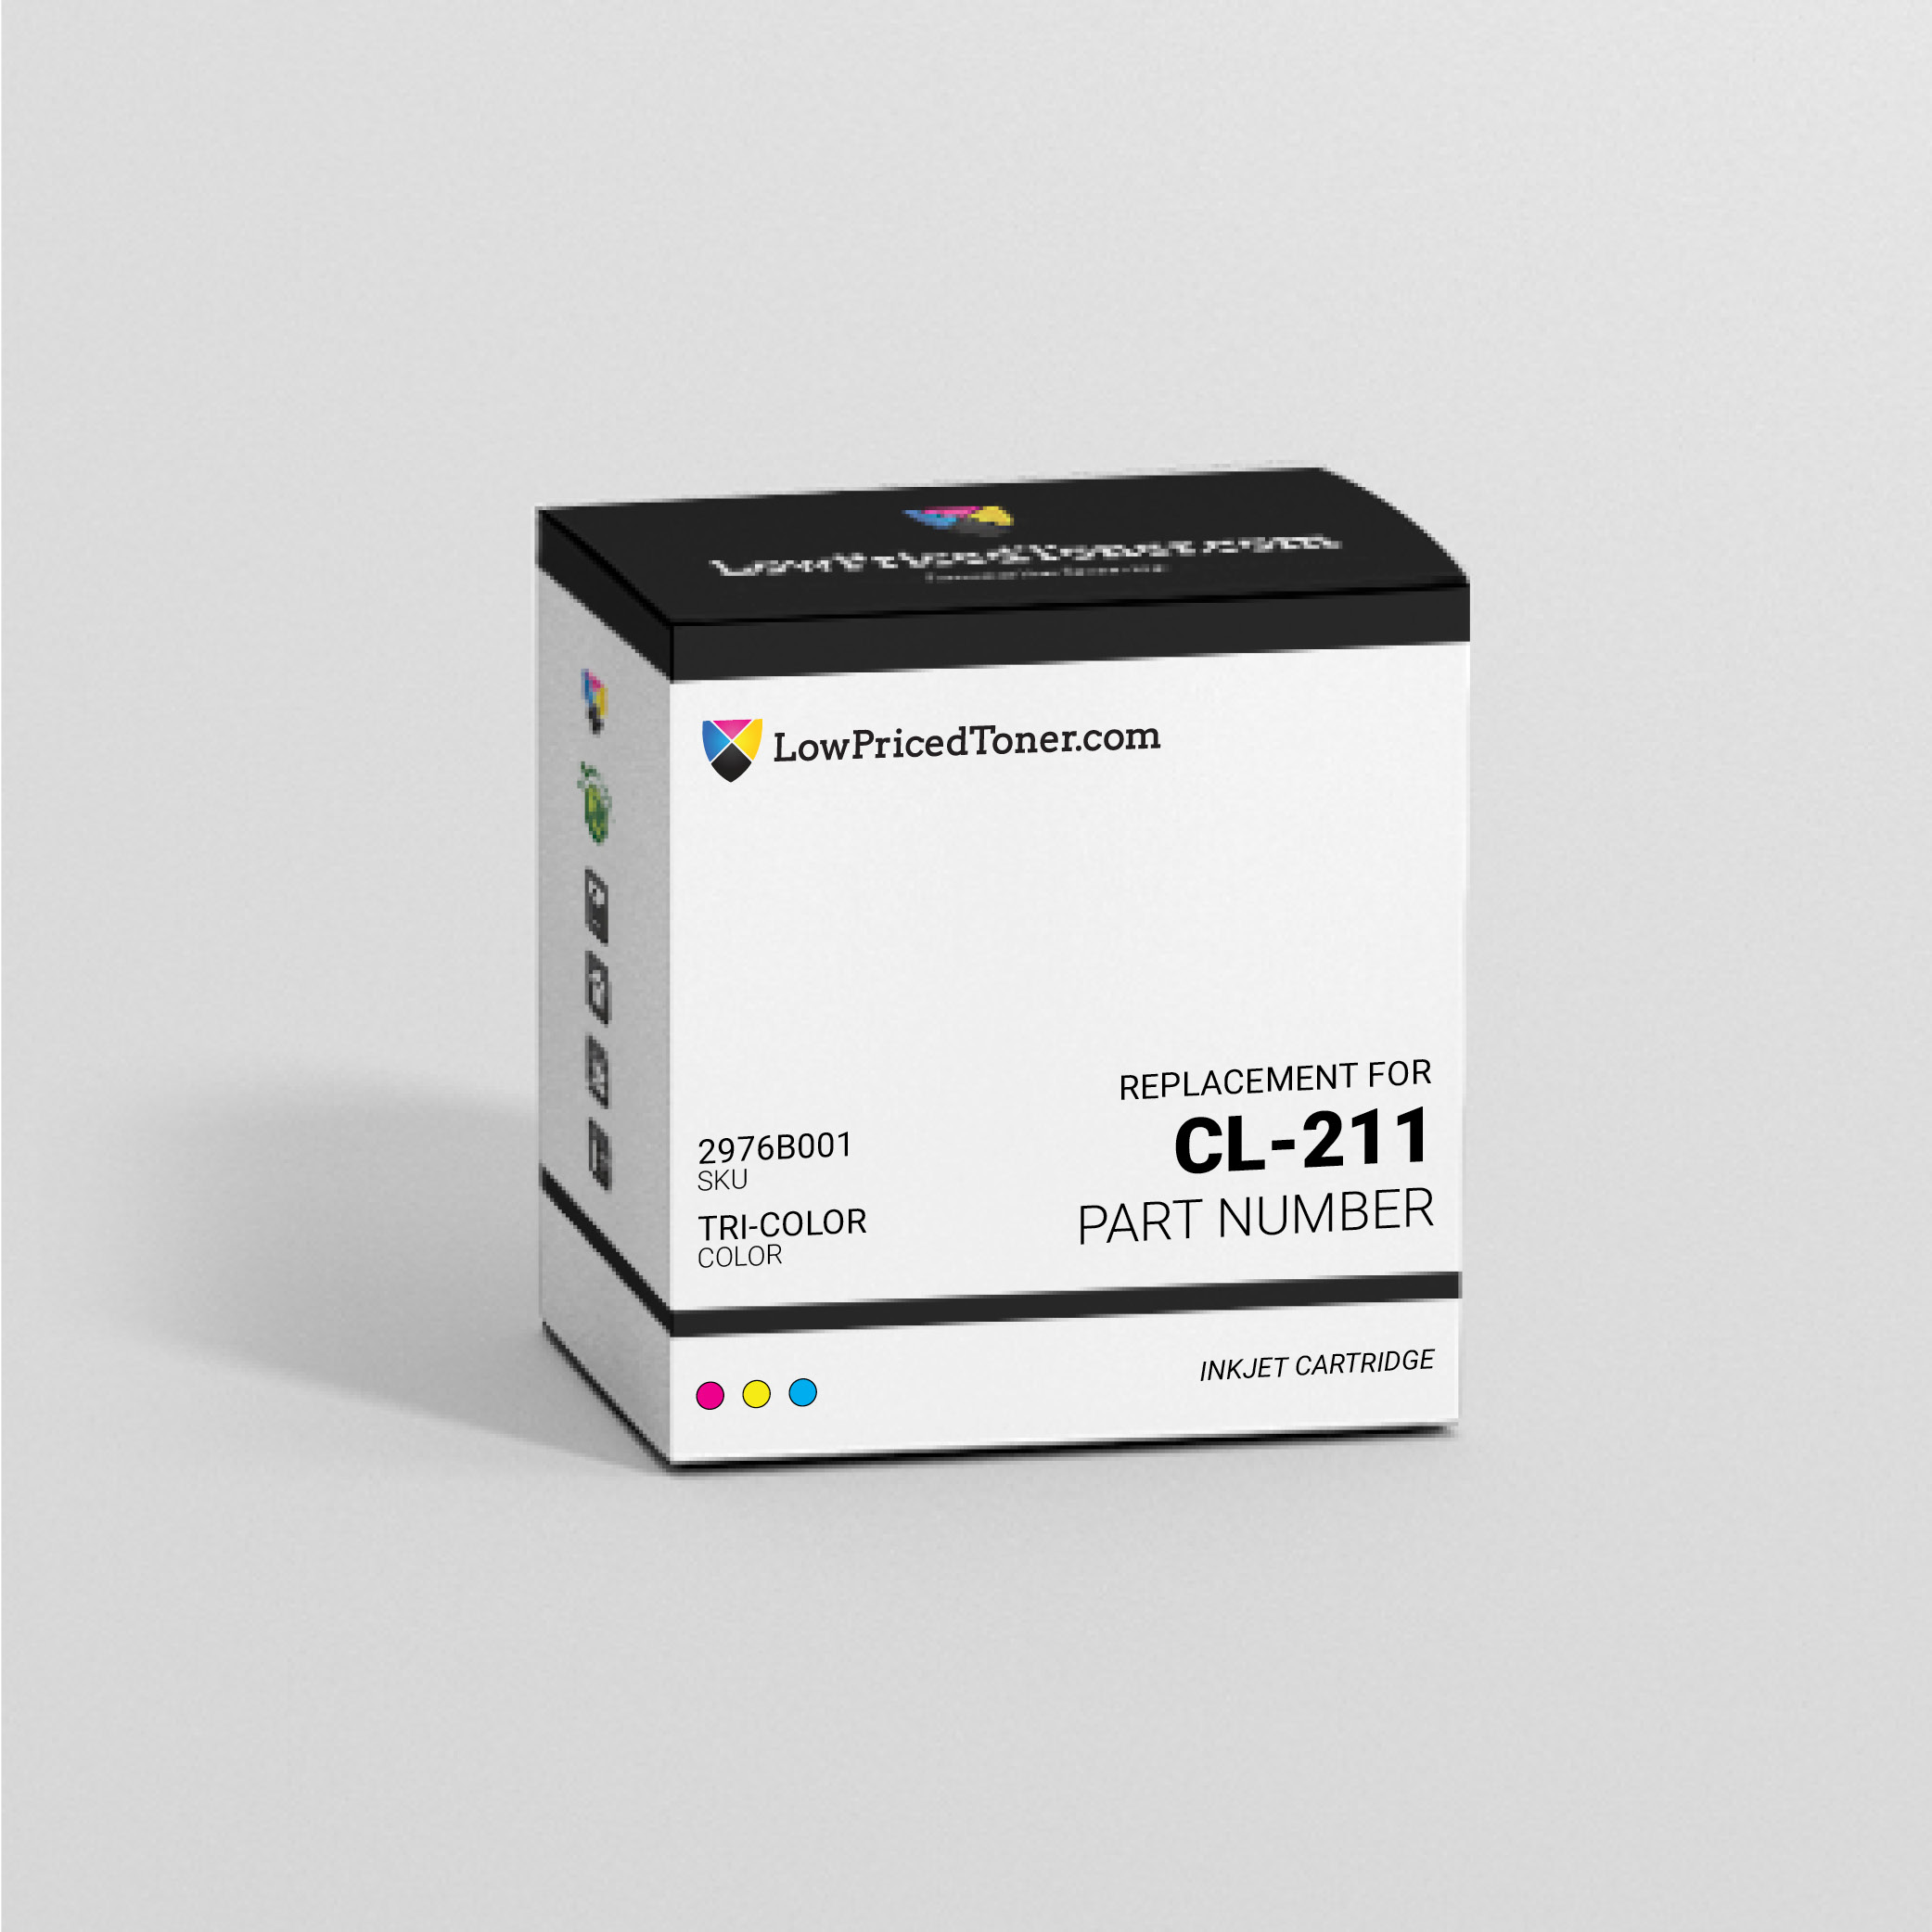 Canon 2976B001 CL-211 Remanufactured TriColor Ink Cartridge